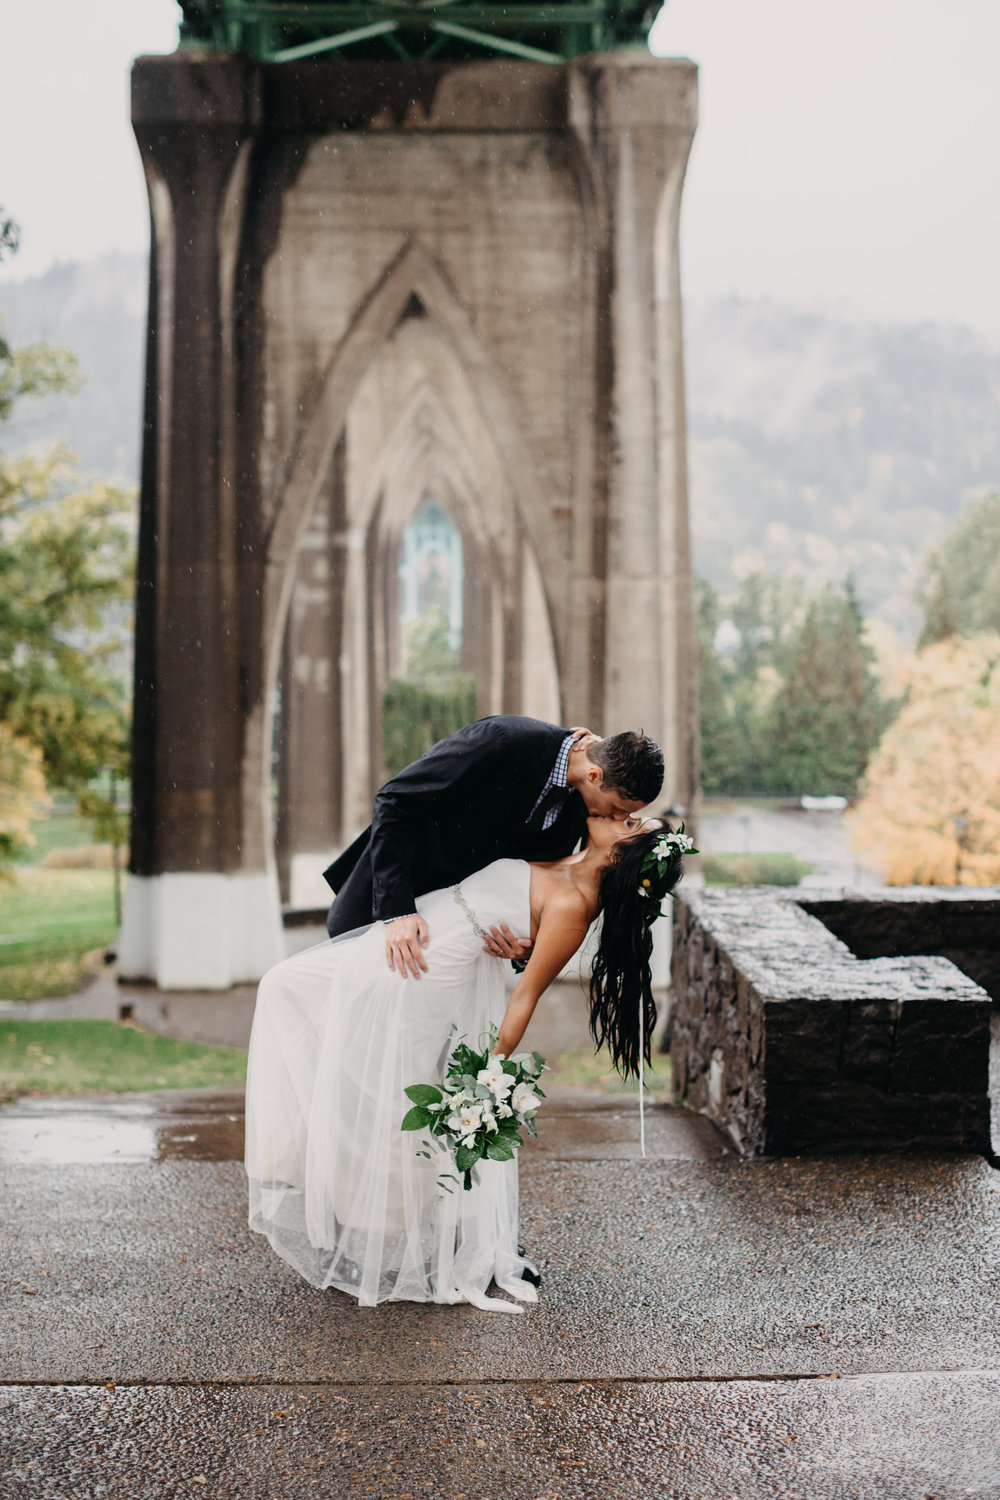 Portland Boise Wedding Photographer Leah Flores